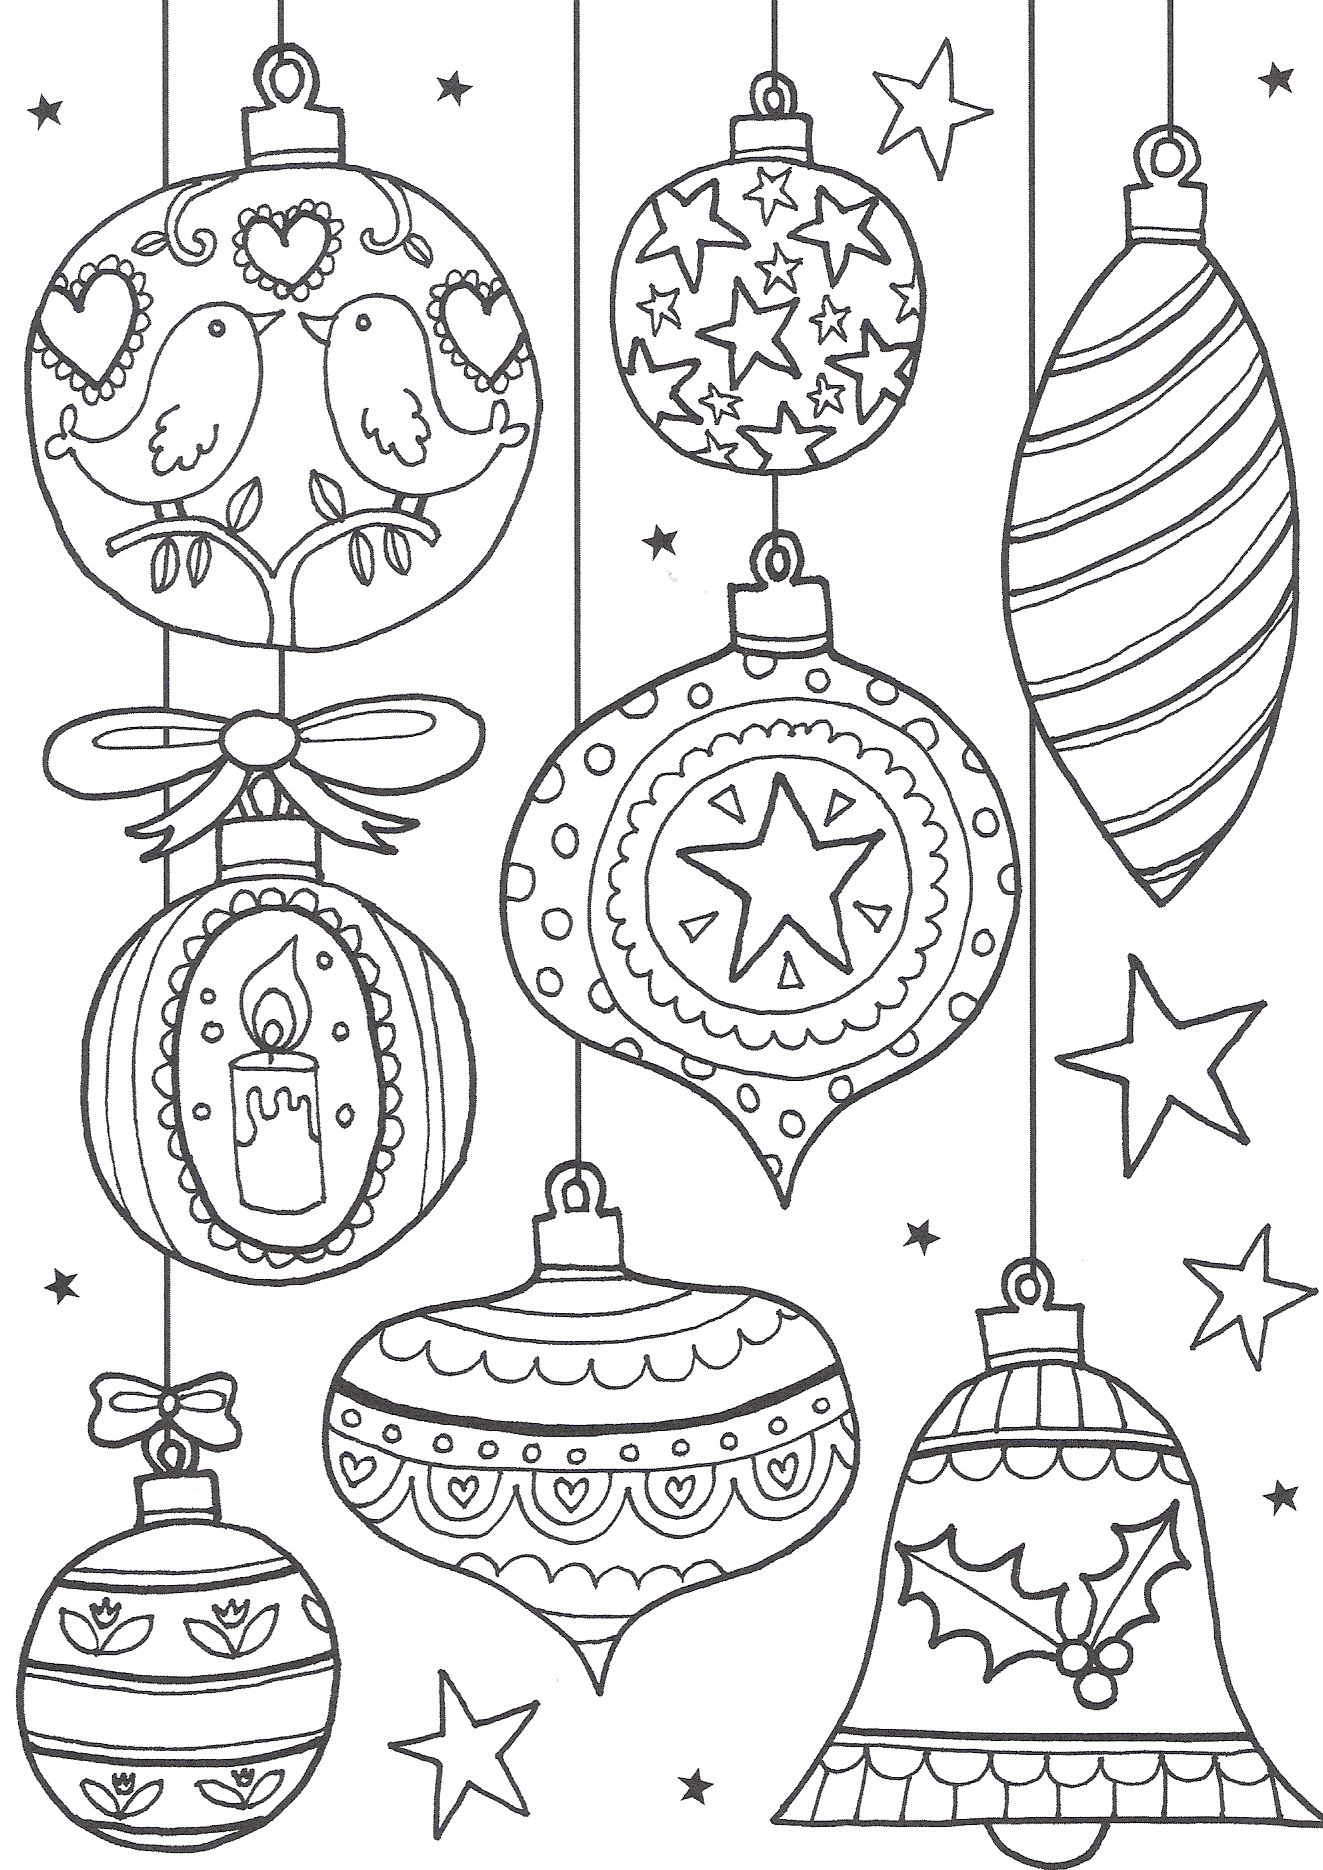 Christmas Coloring Pages For Adults Online With Free Colouring The Ultimate Roundup